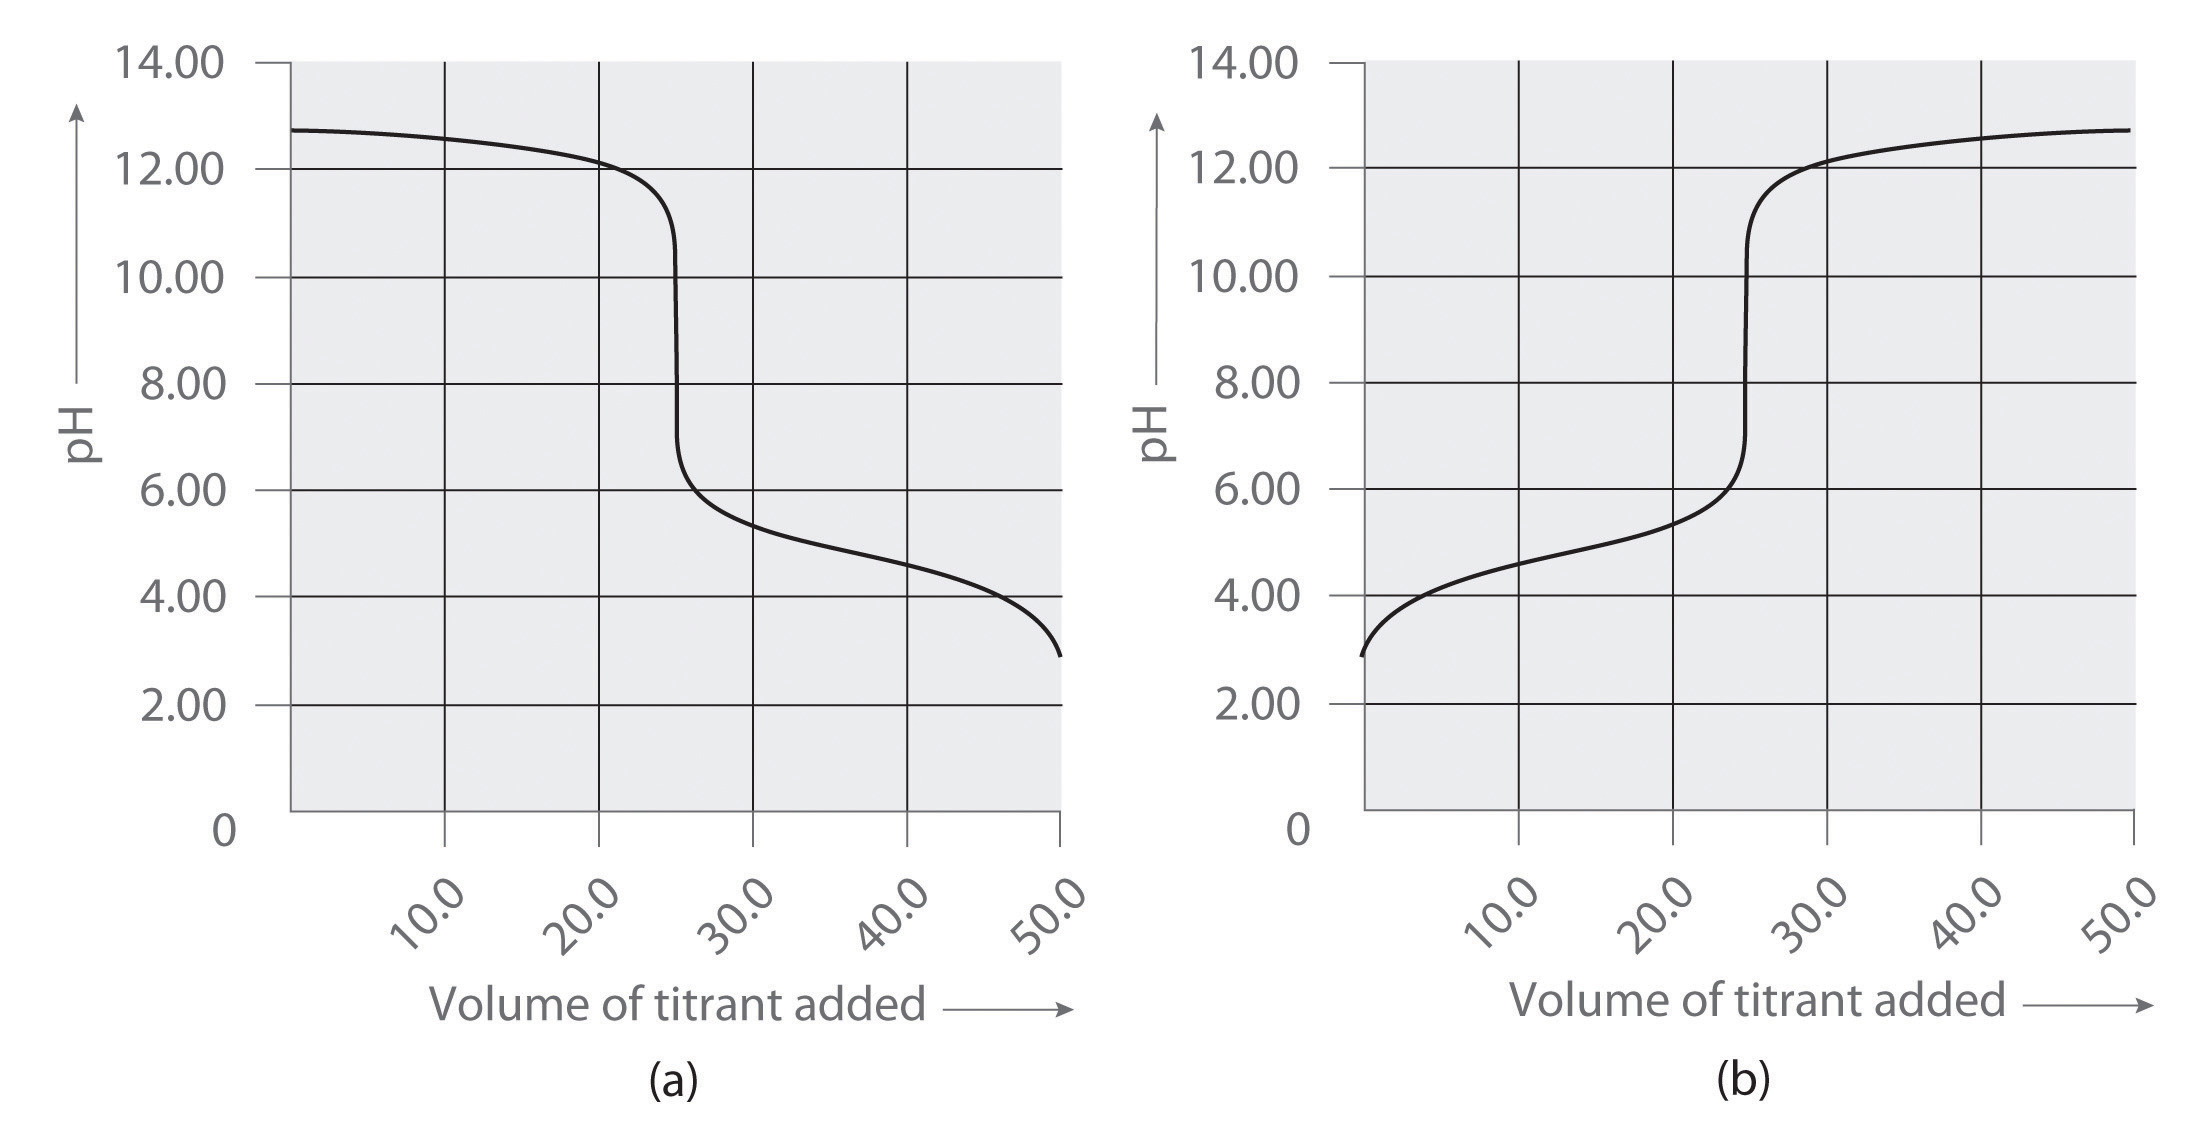 And The Other Corresponds To The Titration Of 100 Ml 010 M Nh 4cl With  010 M Naoh Which Graph Corresponds To Which Titration? Justify Your  Answer